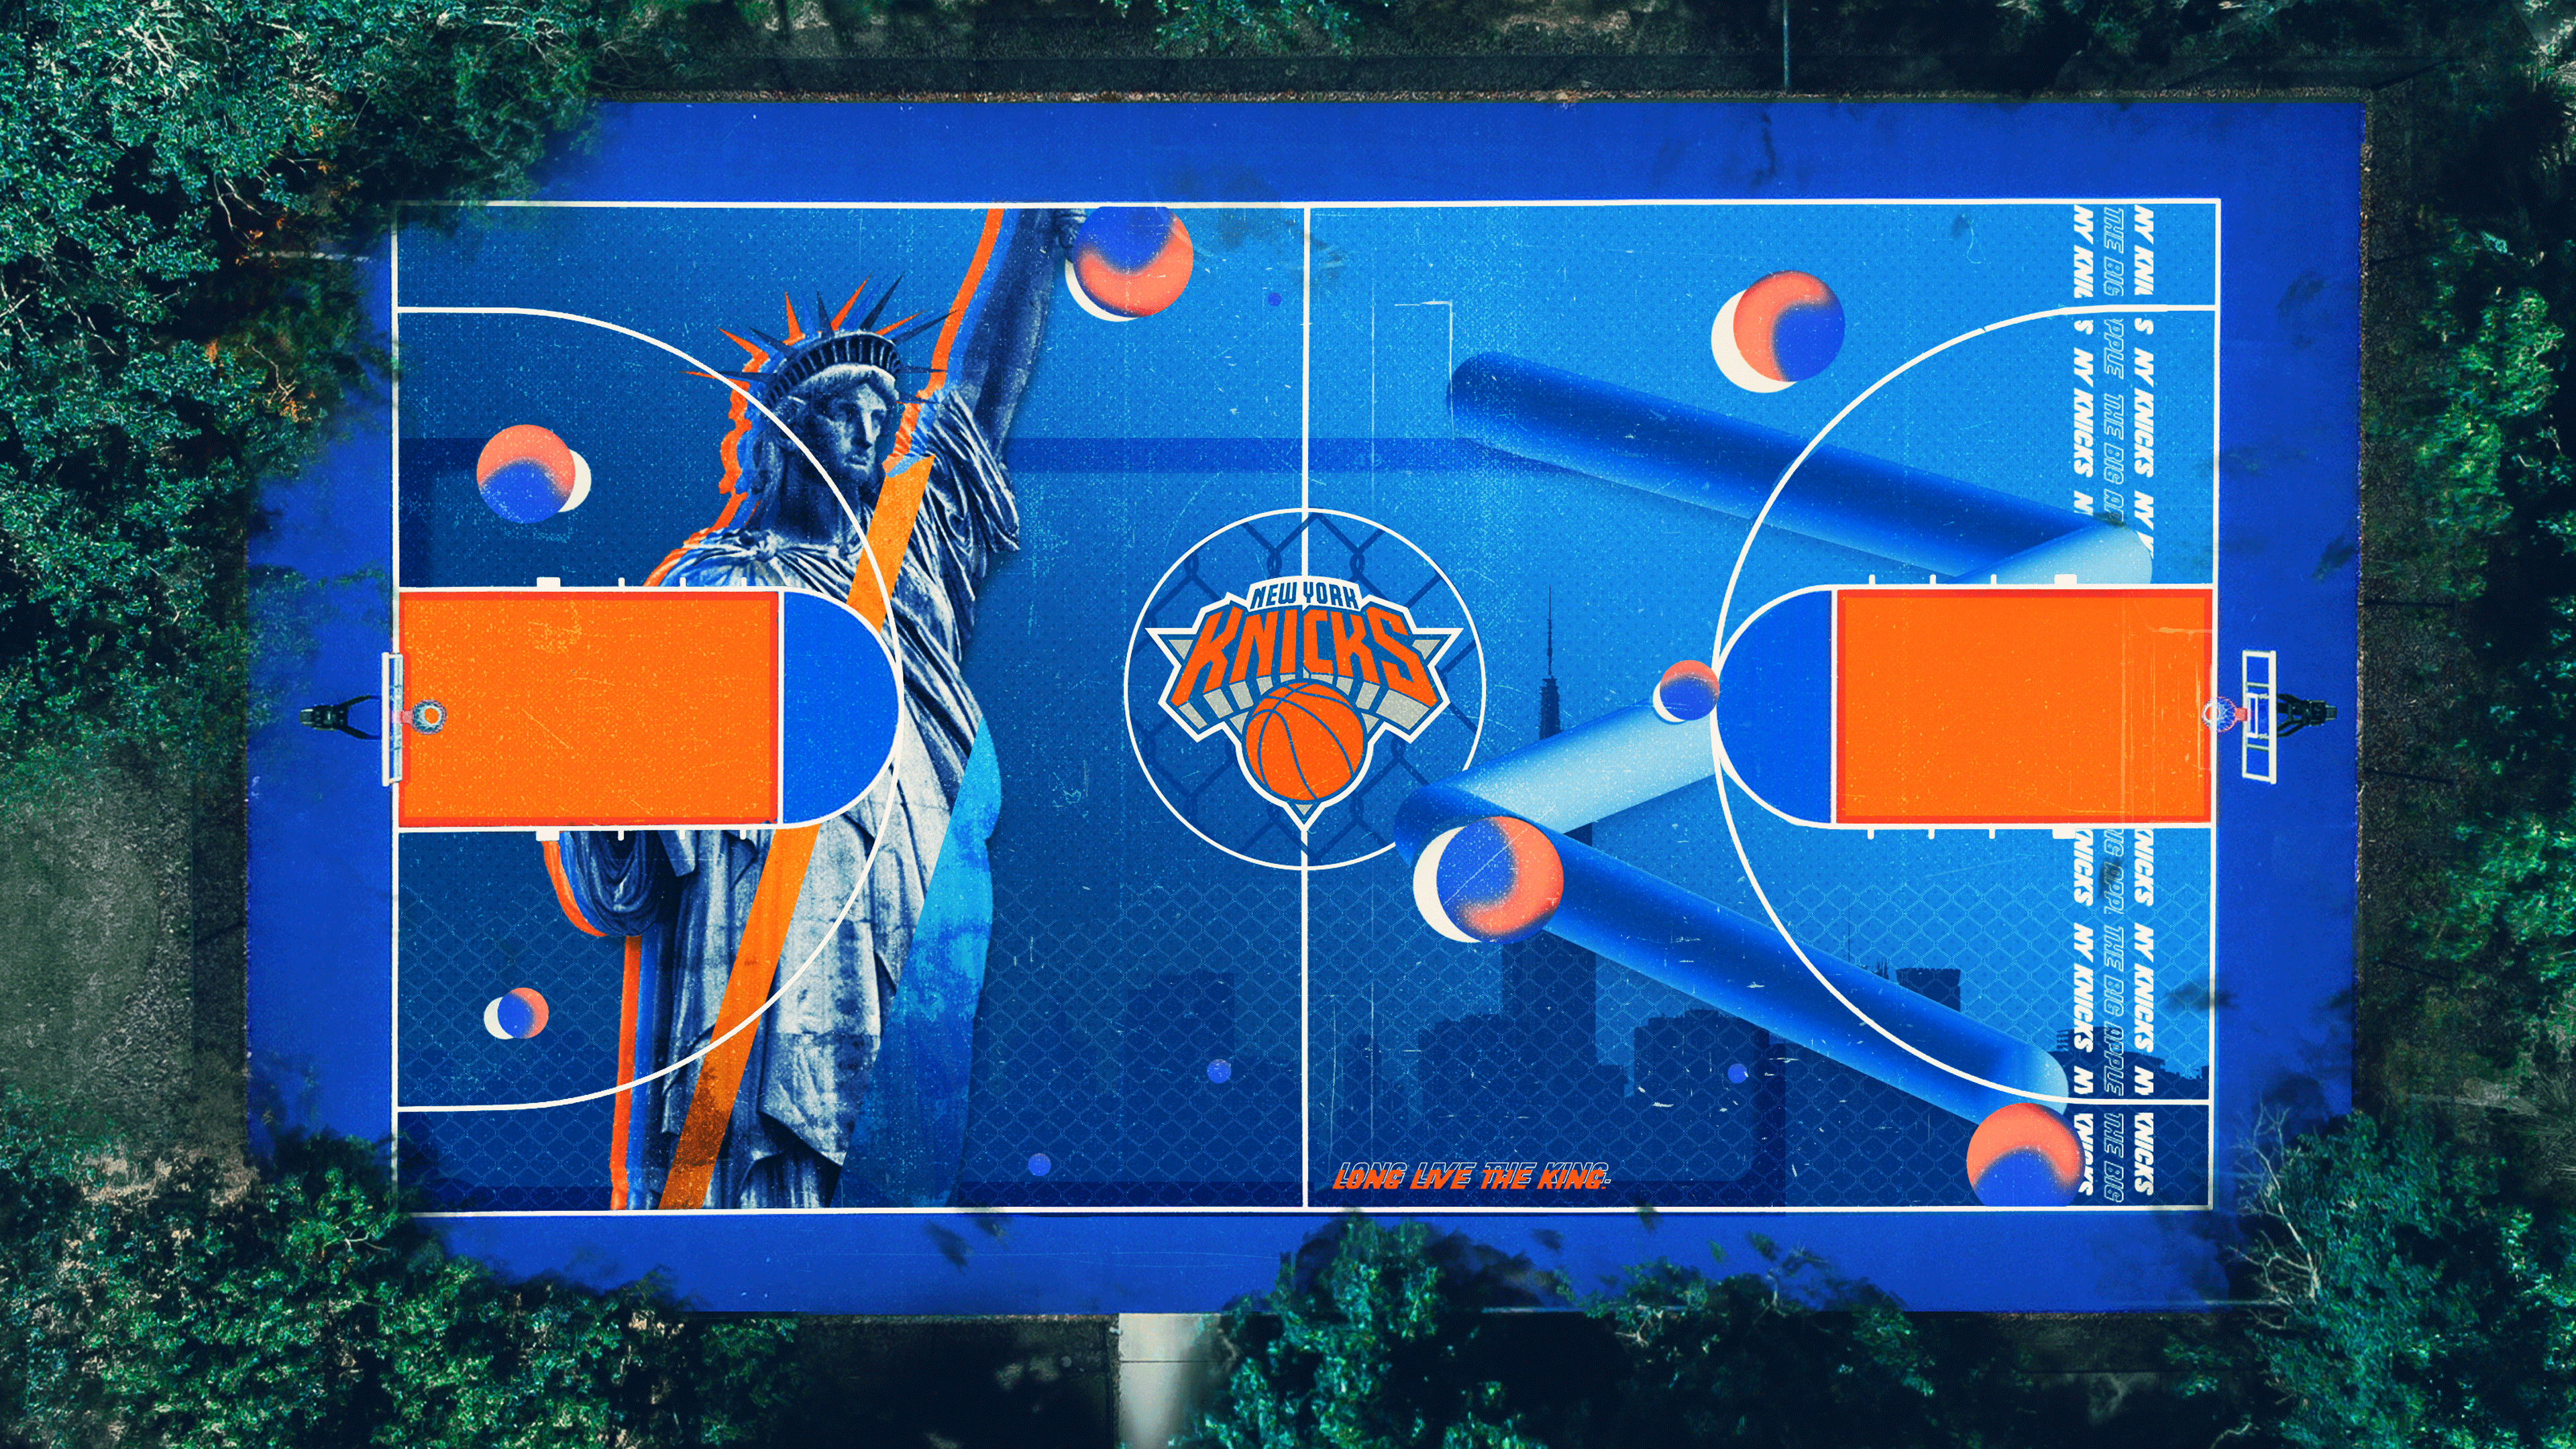 New York Knicks outdoors court